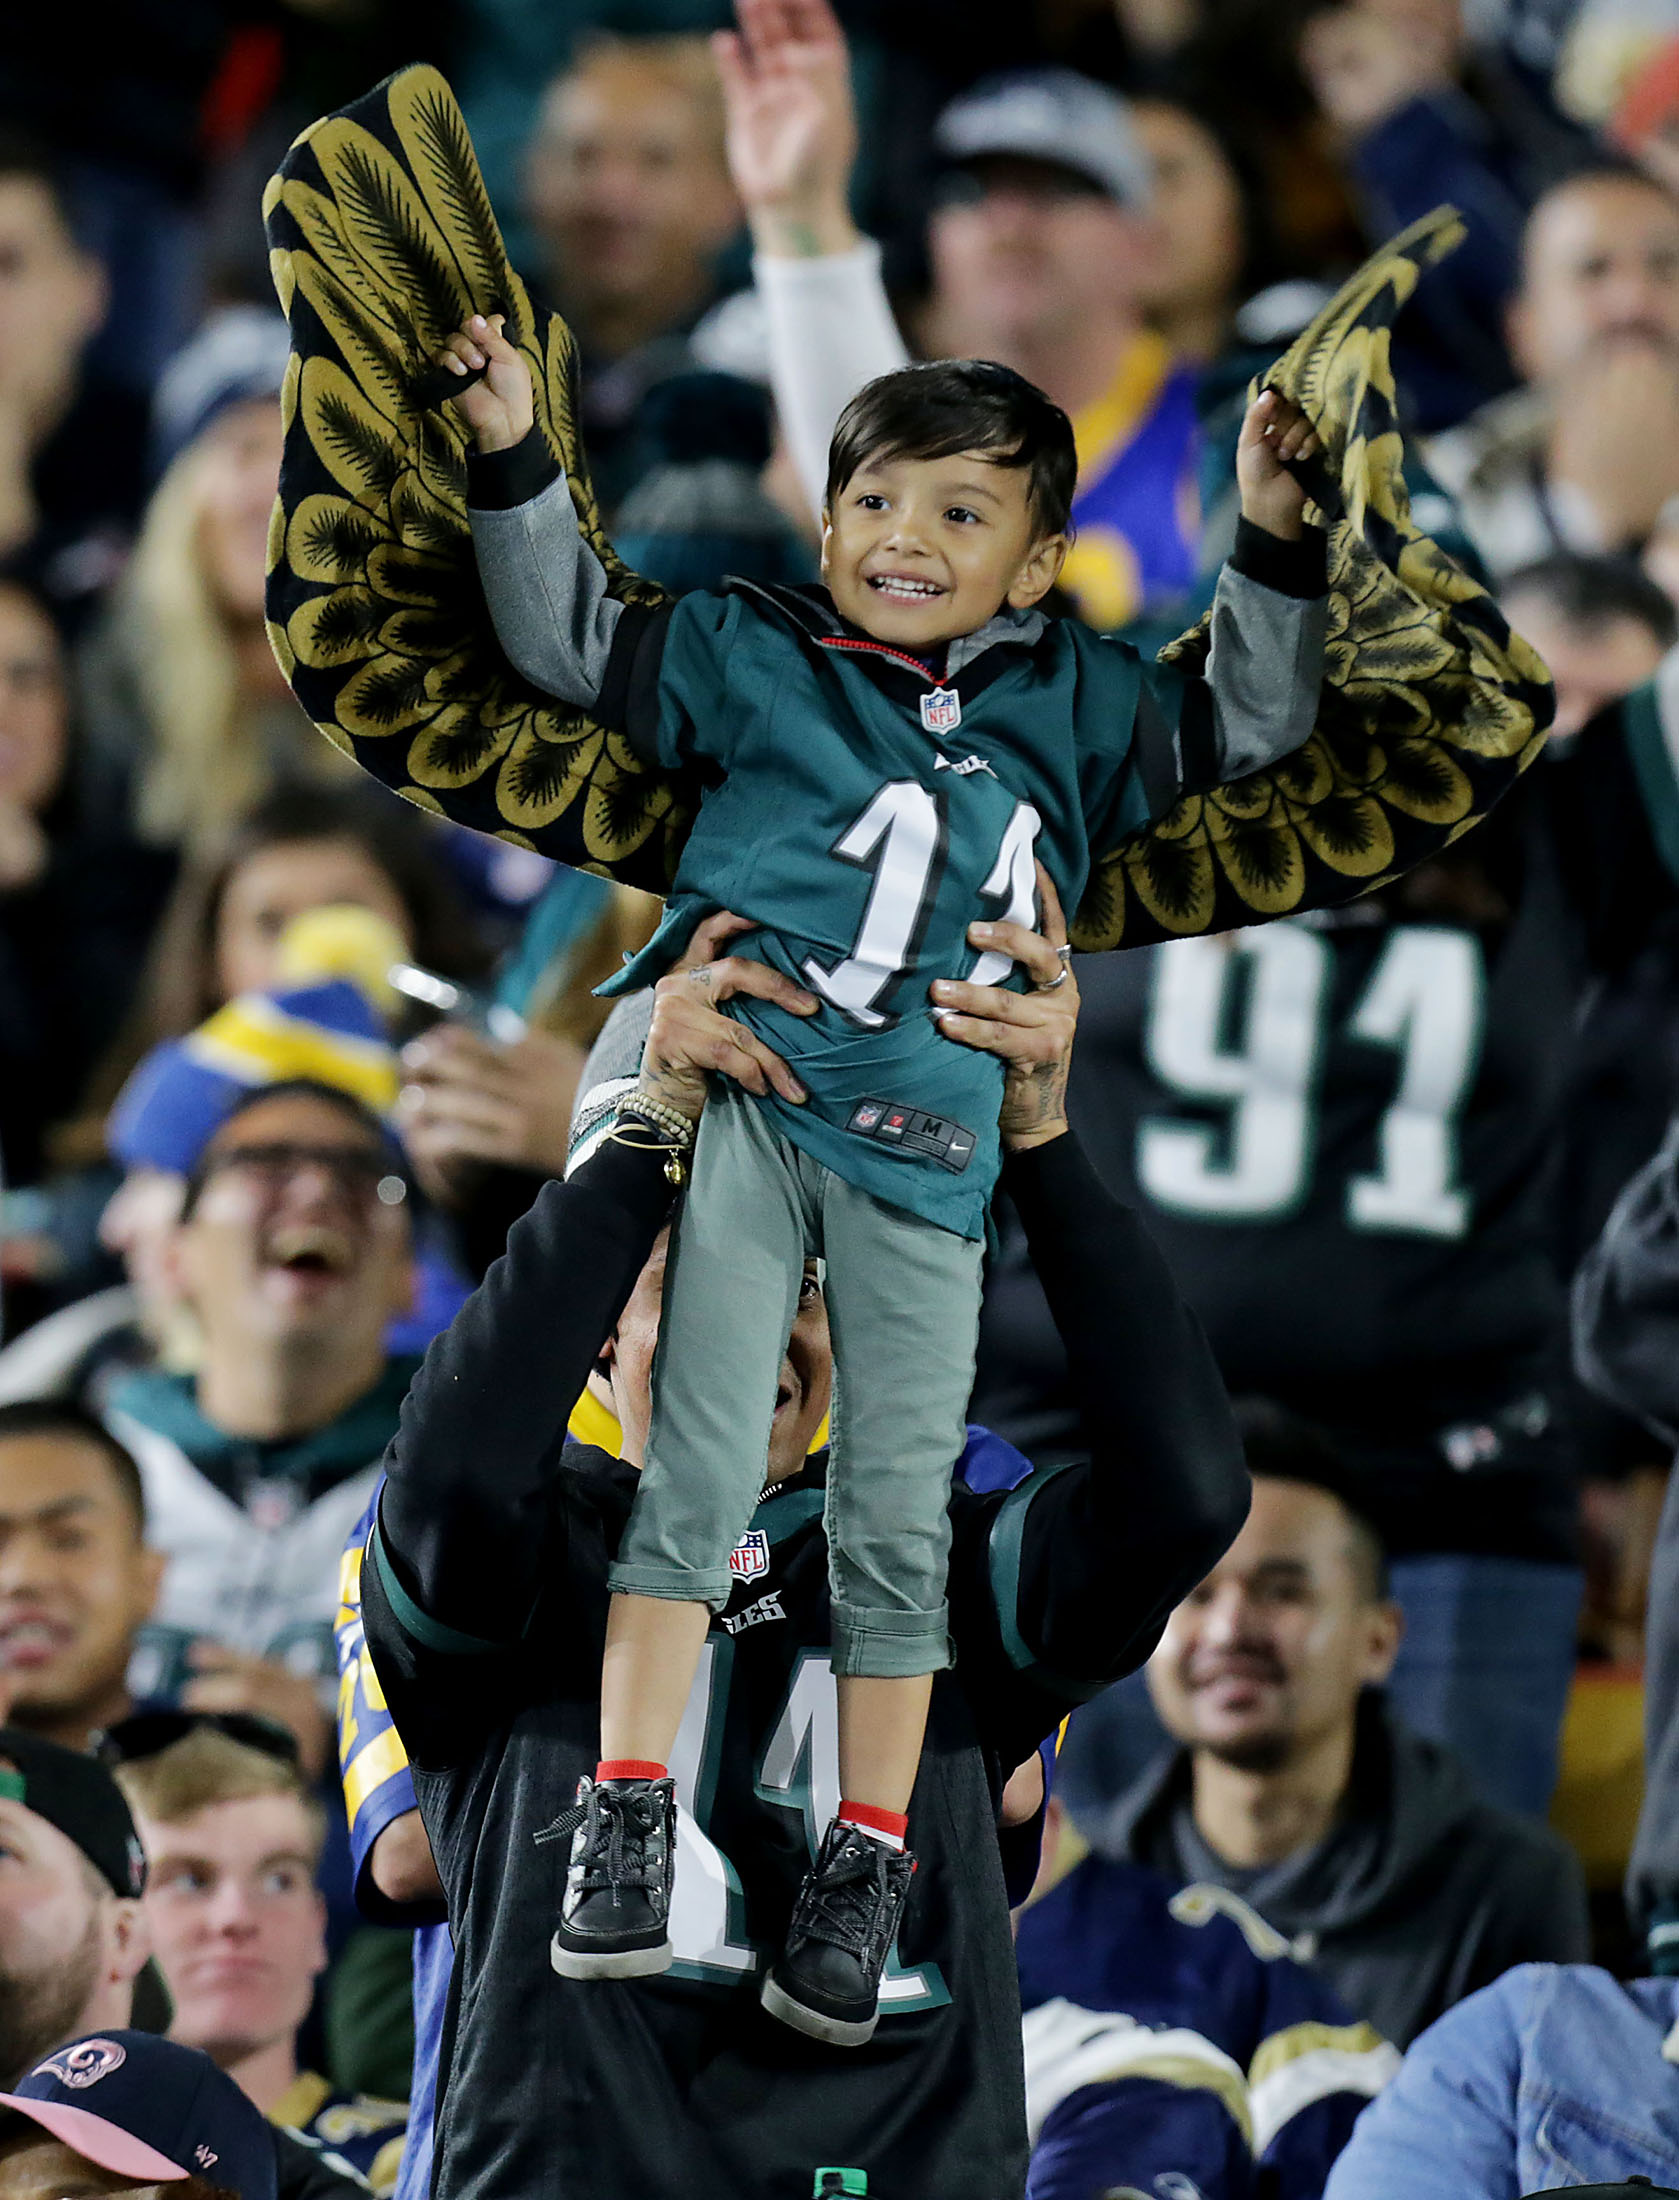 Philadelphia Eagles fans were flying after the a touchdown against the Los Angeles Rams in the second half of the game at the Los Angeles Memorial Coliseum in Los Angeles on Sunday, December 16, 2018.